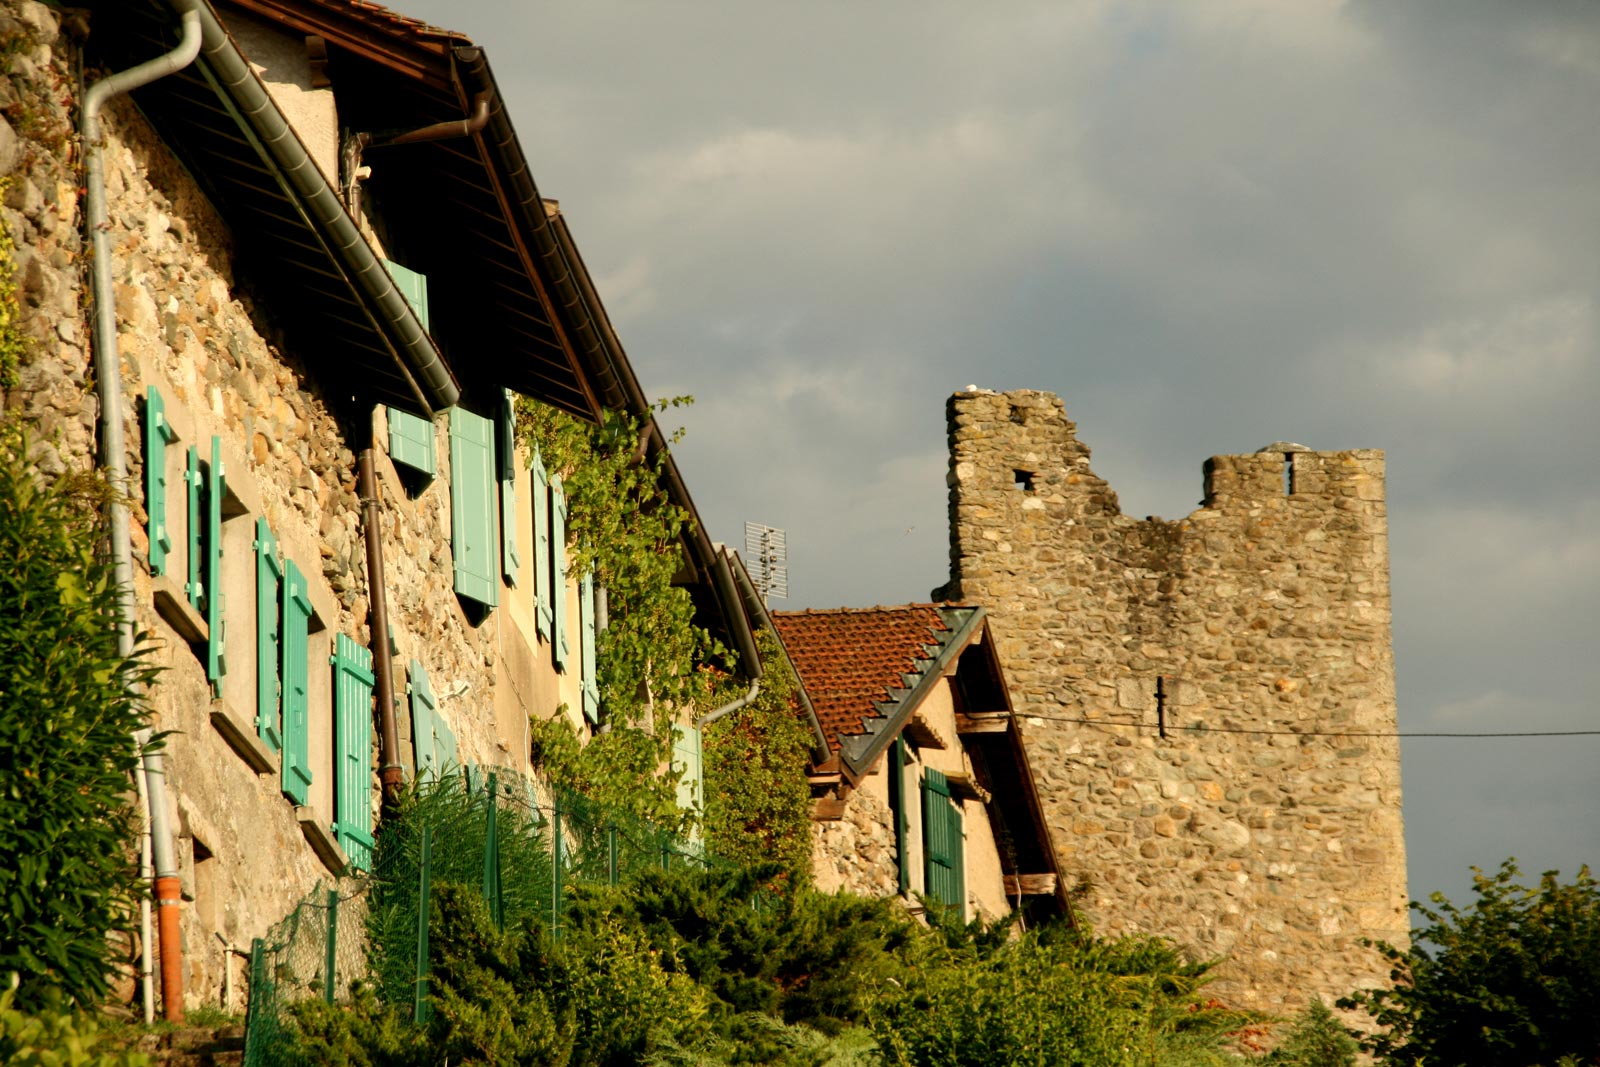 Some houses were built into the ramparts of Yvoire.